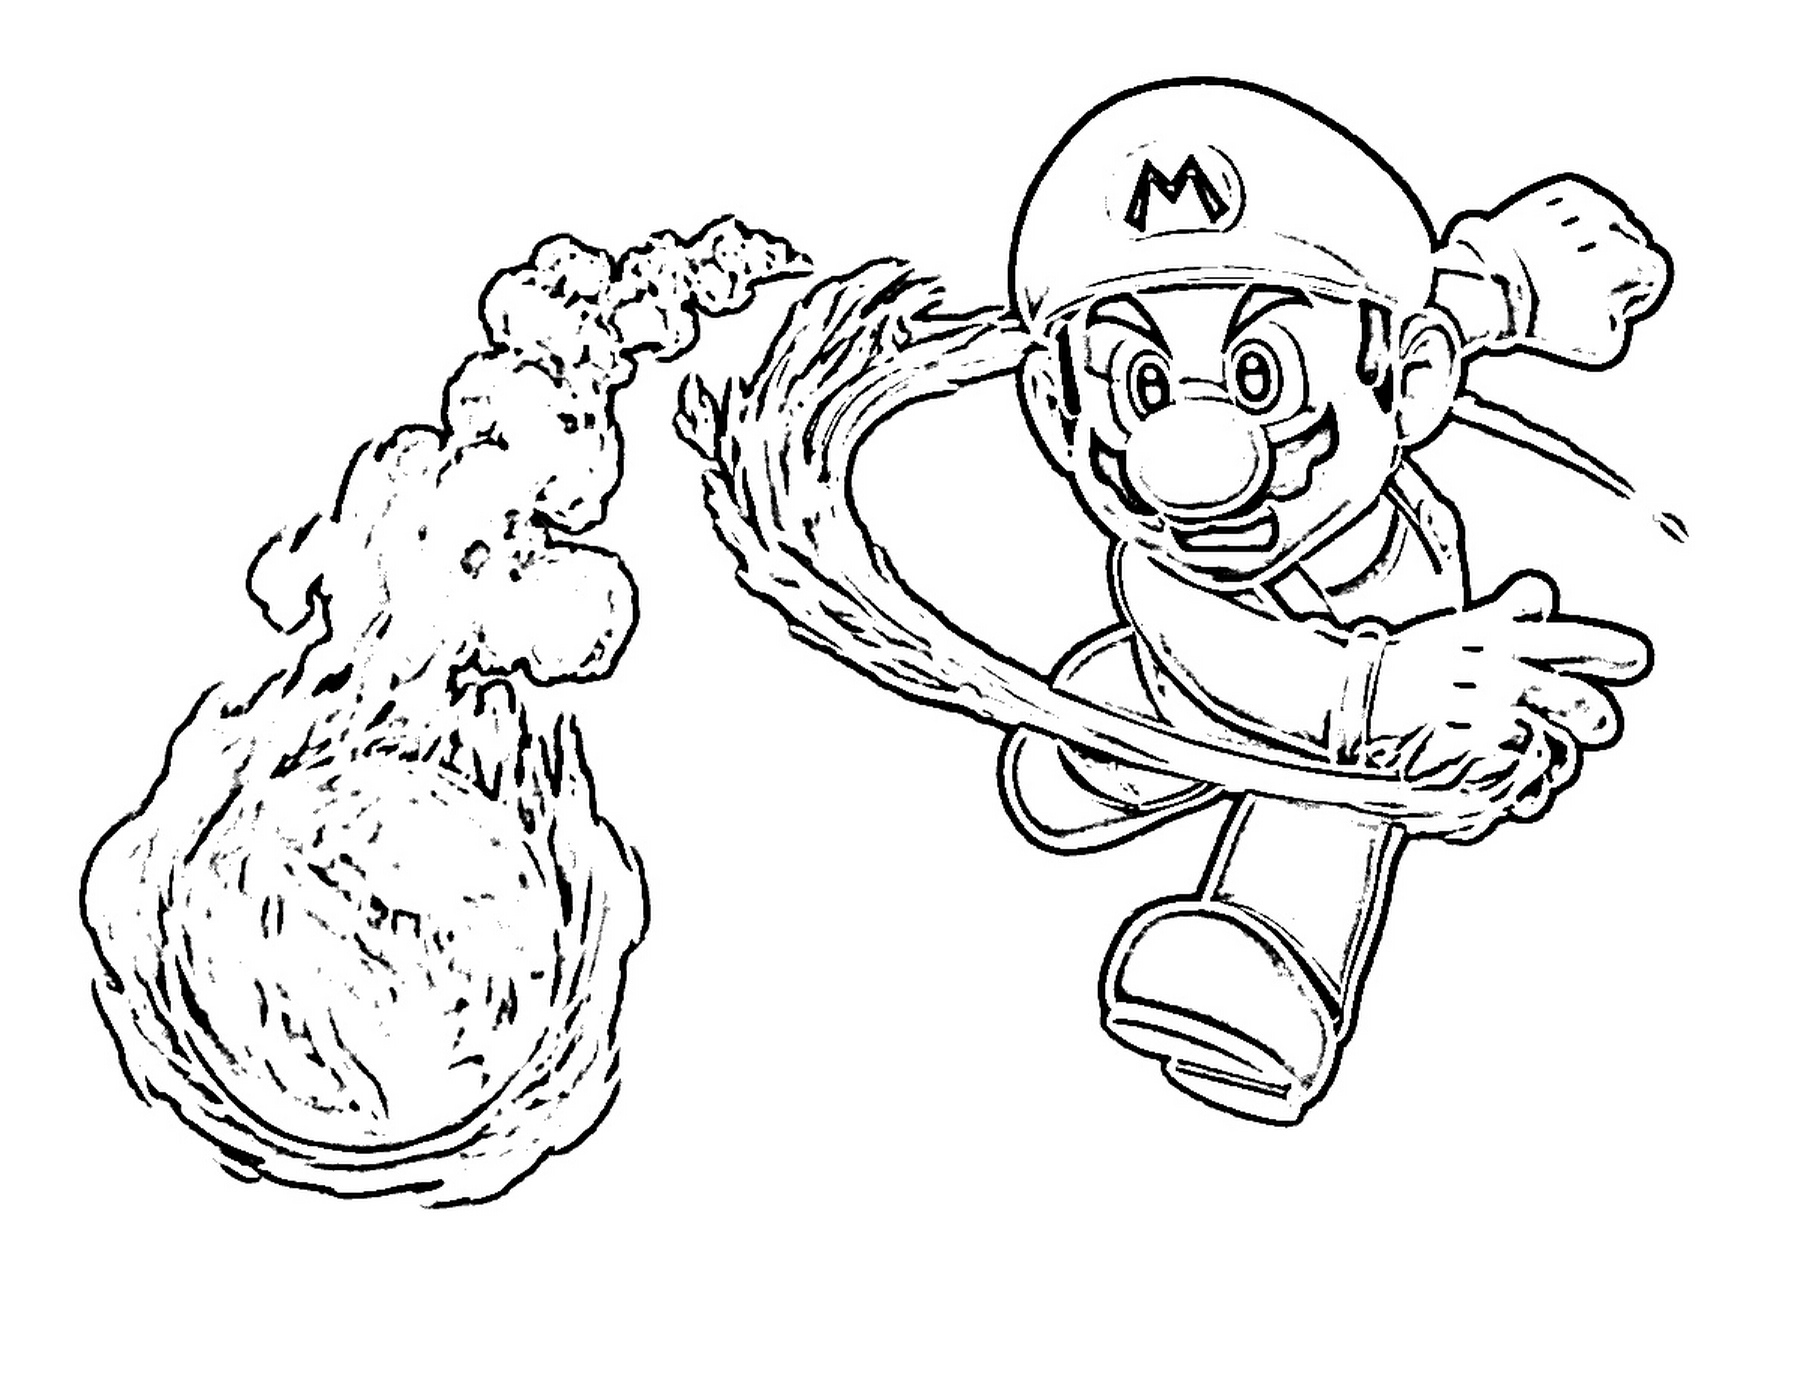 mario brothers coloring pages - 23